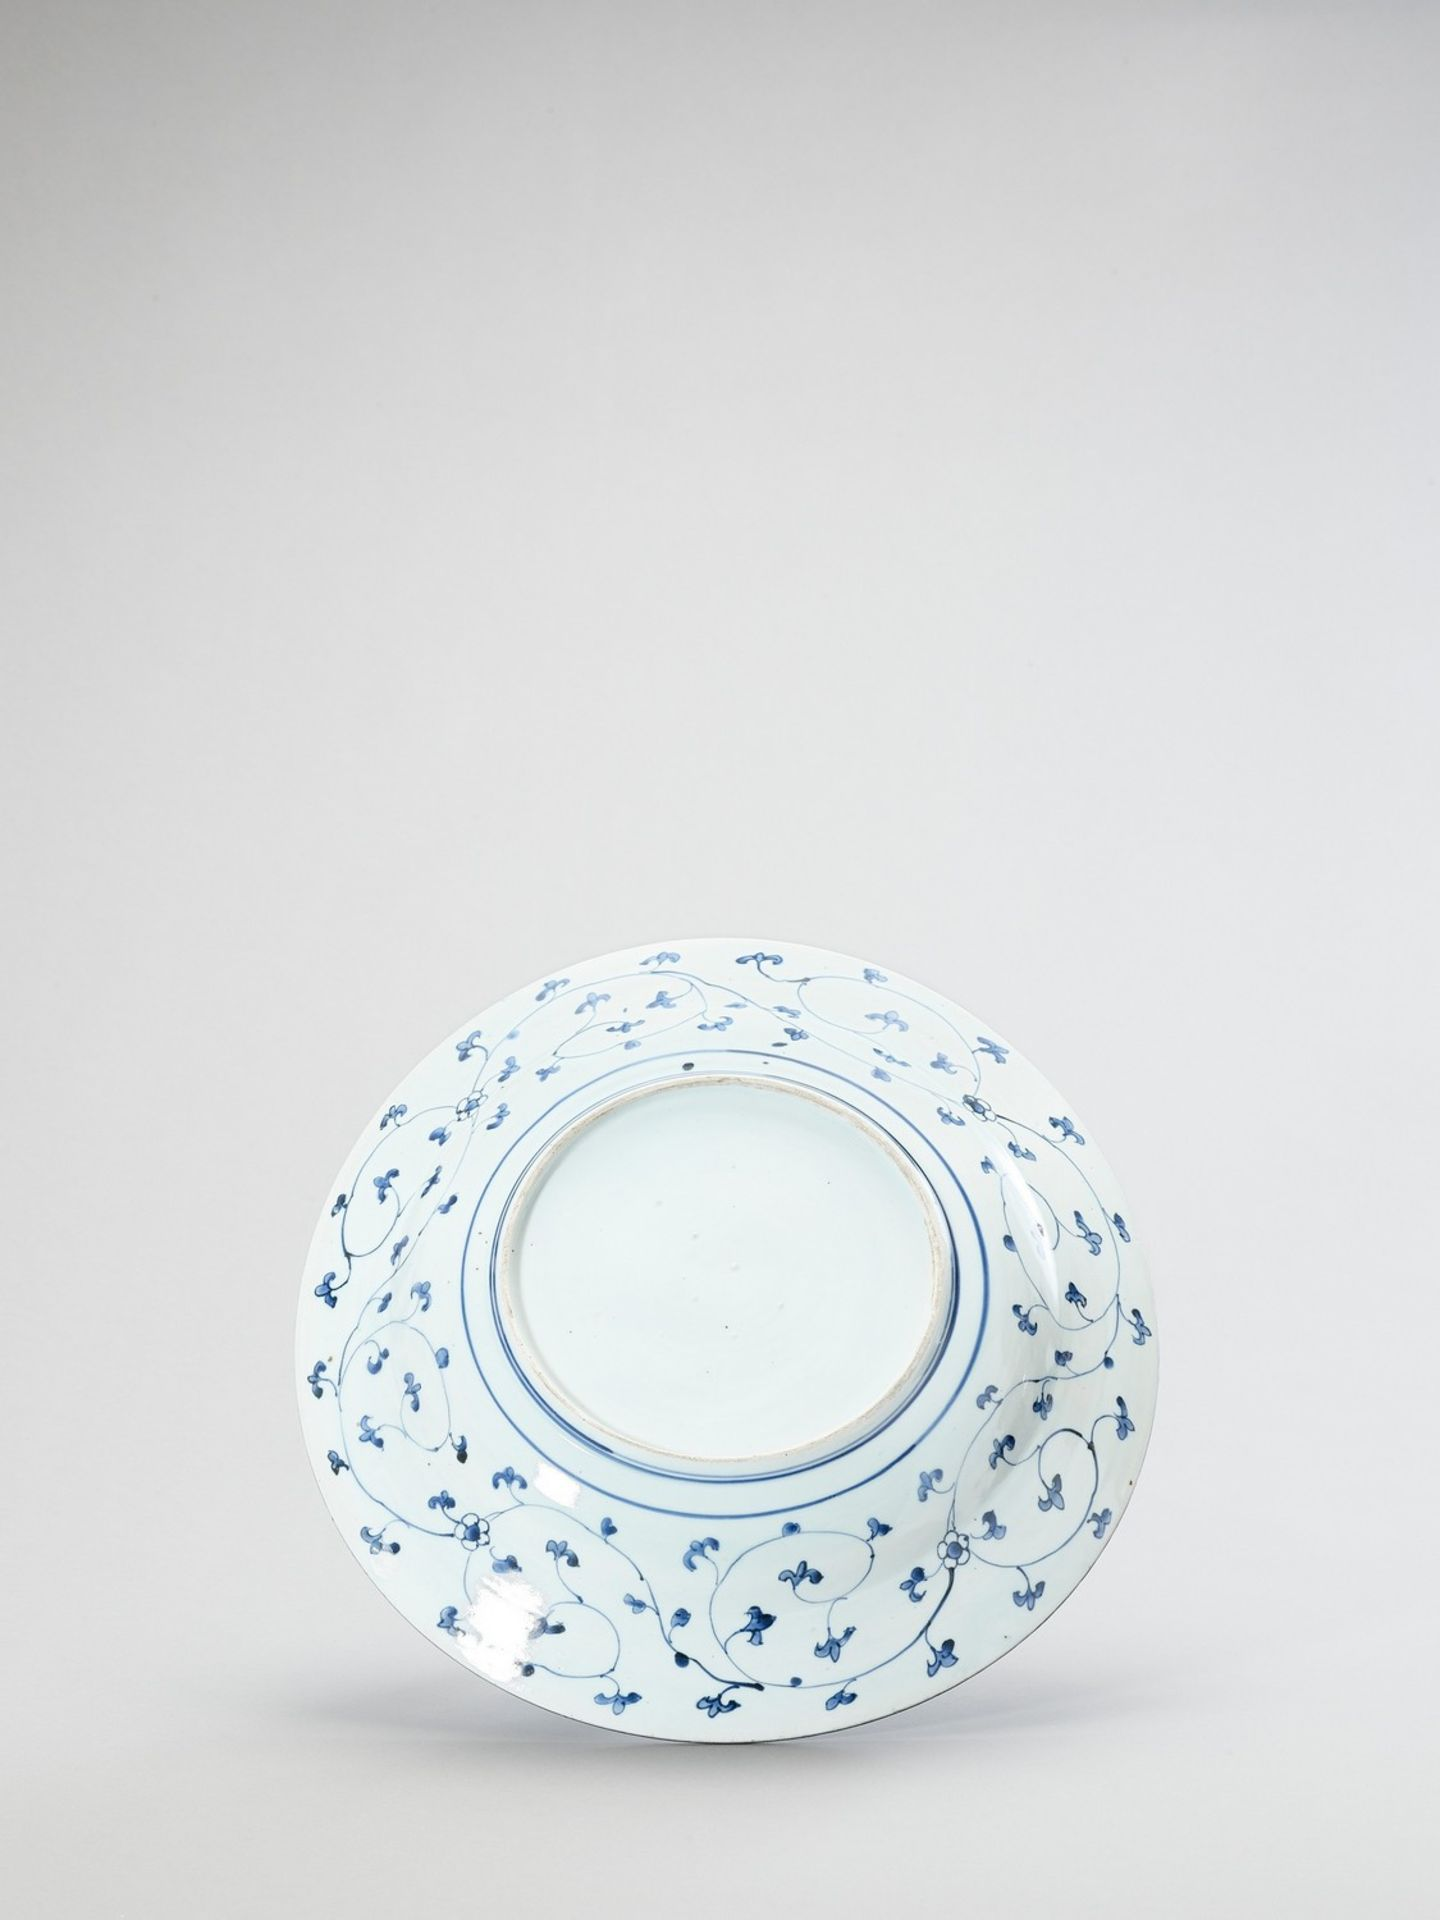 A LARGE BLUE AND WHITE PORCELAIN CHARGER - Image 3 of 5